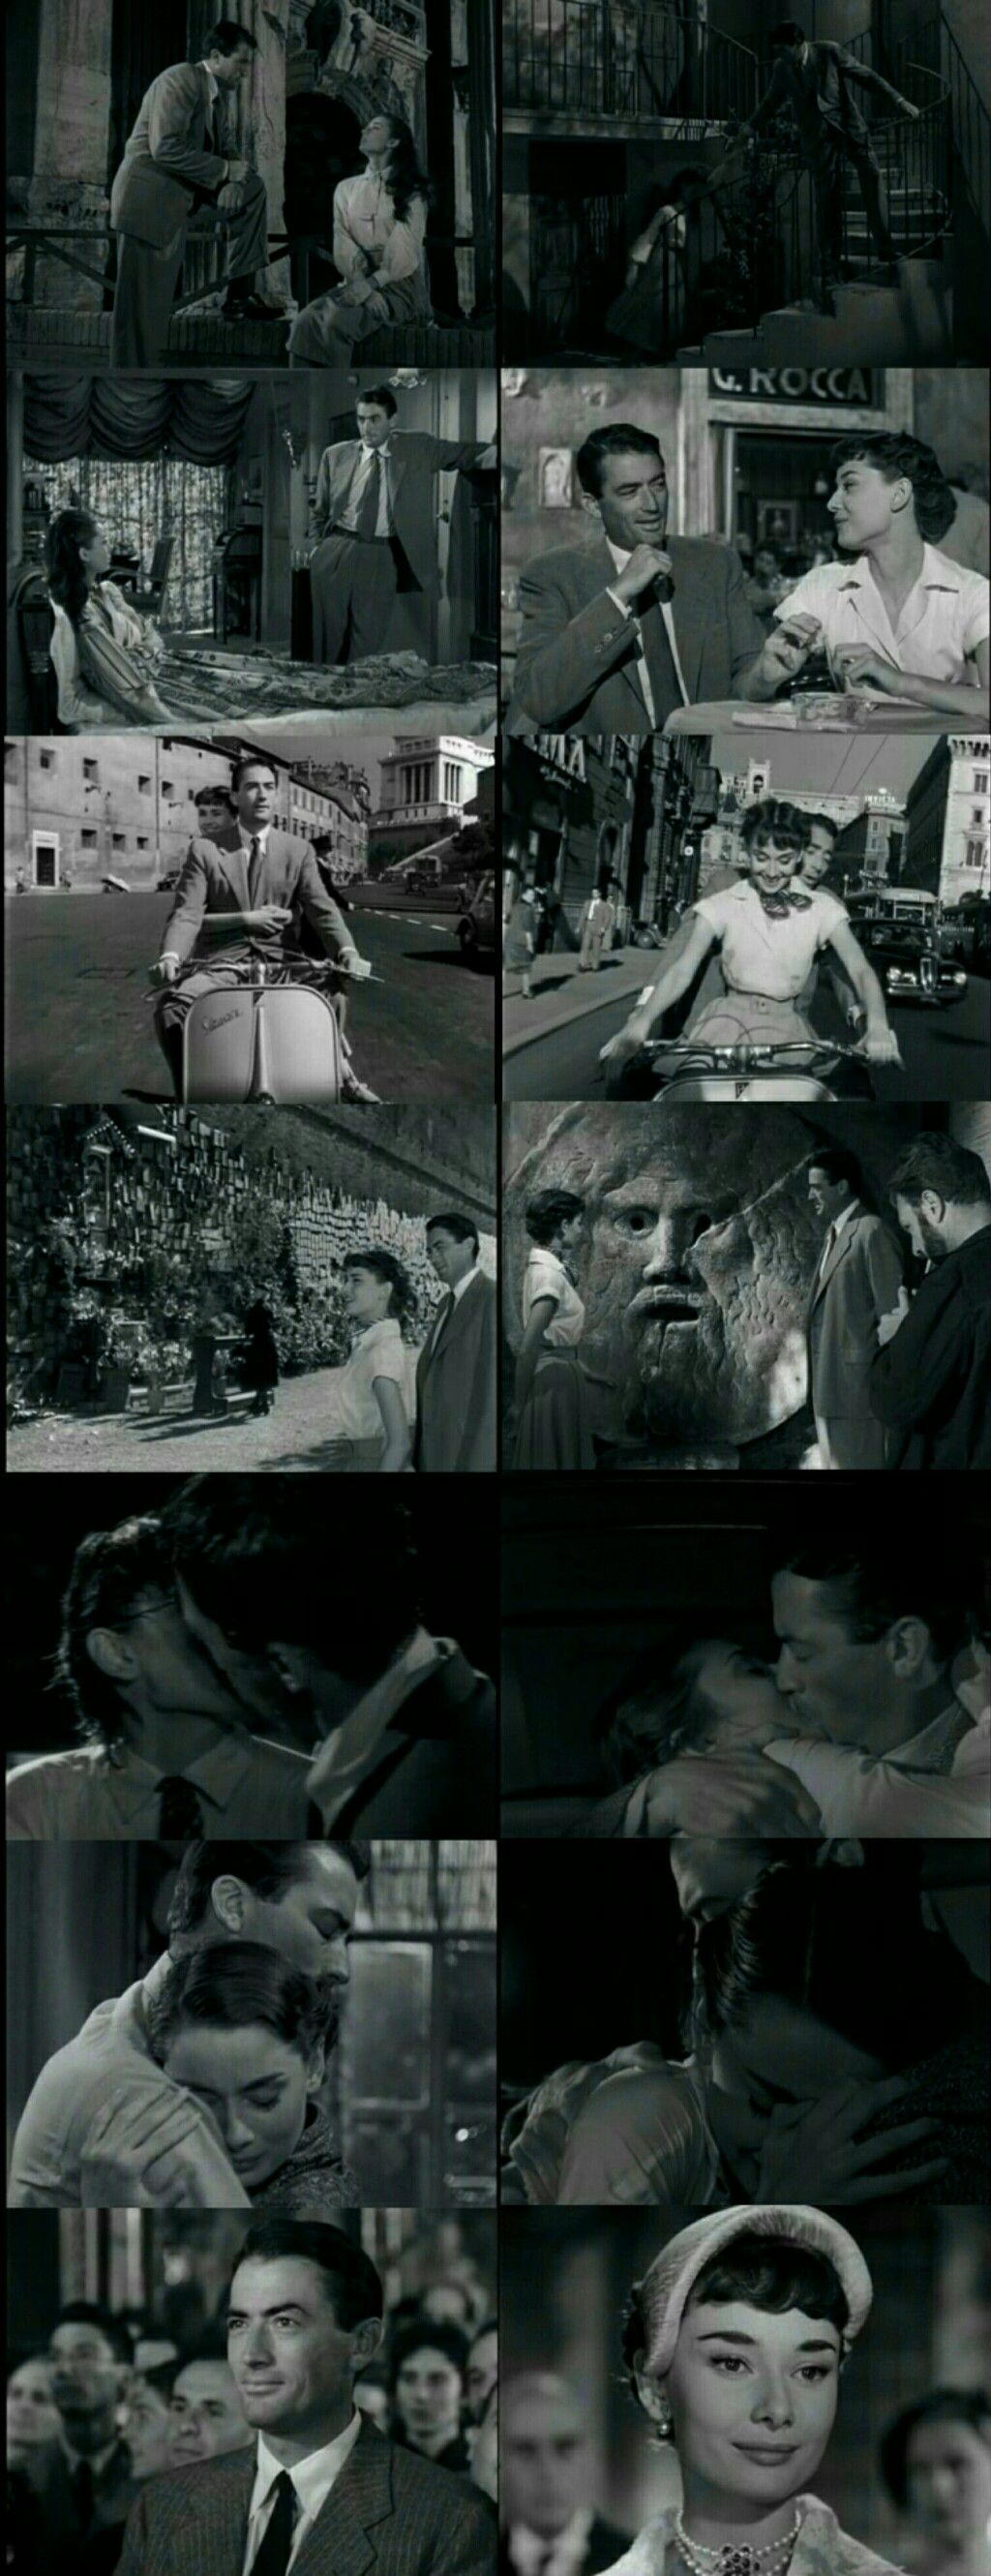 Roman Holiday (1953) Directed by William Wyler. Starring Audrey Hepburn and Gregory Peck in leading roles. #williamwyler